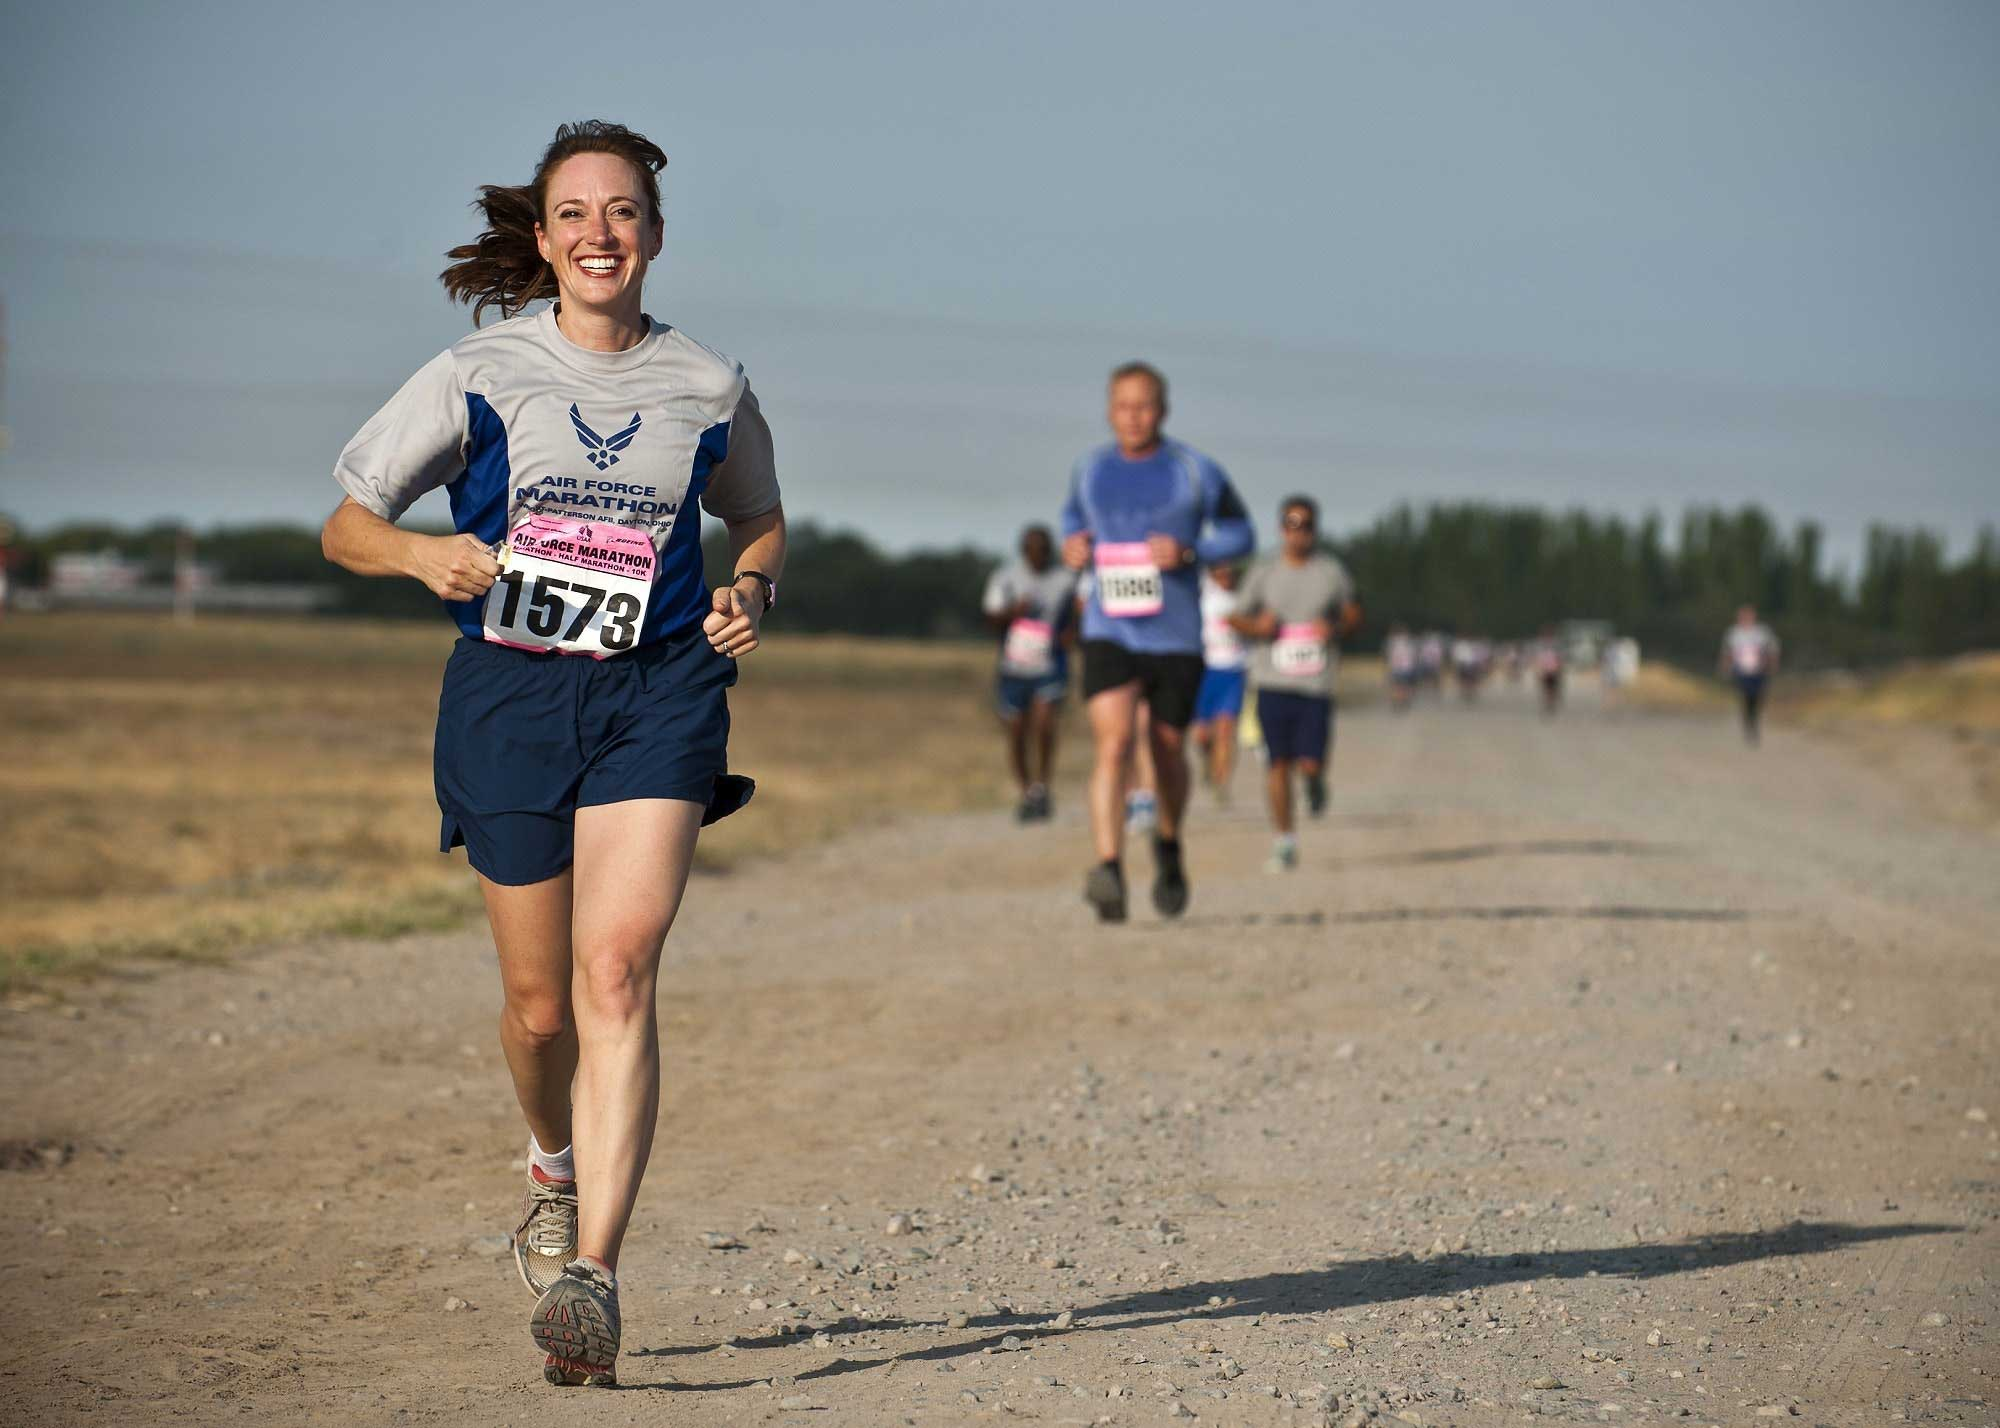 Athletes running together on a dirt road